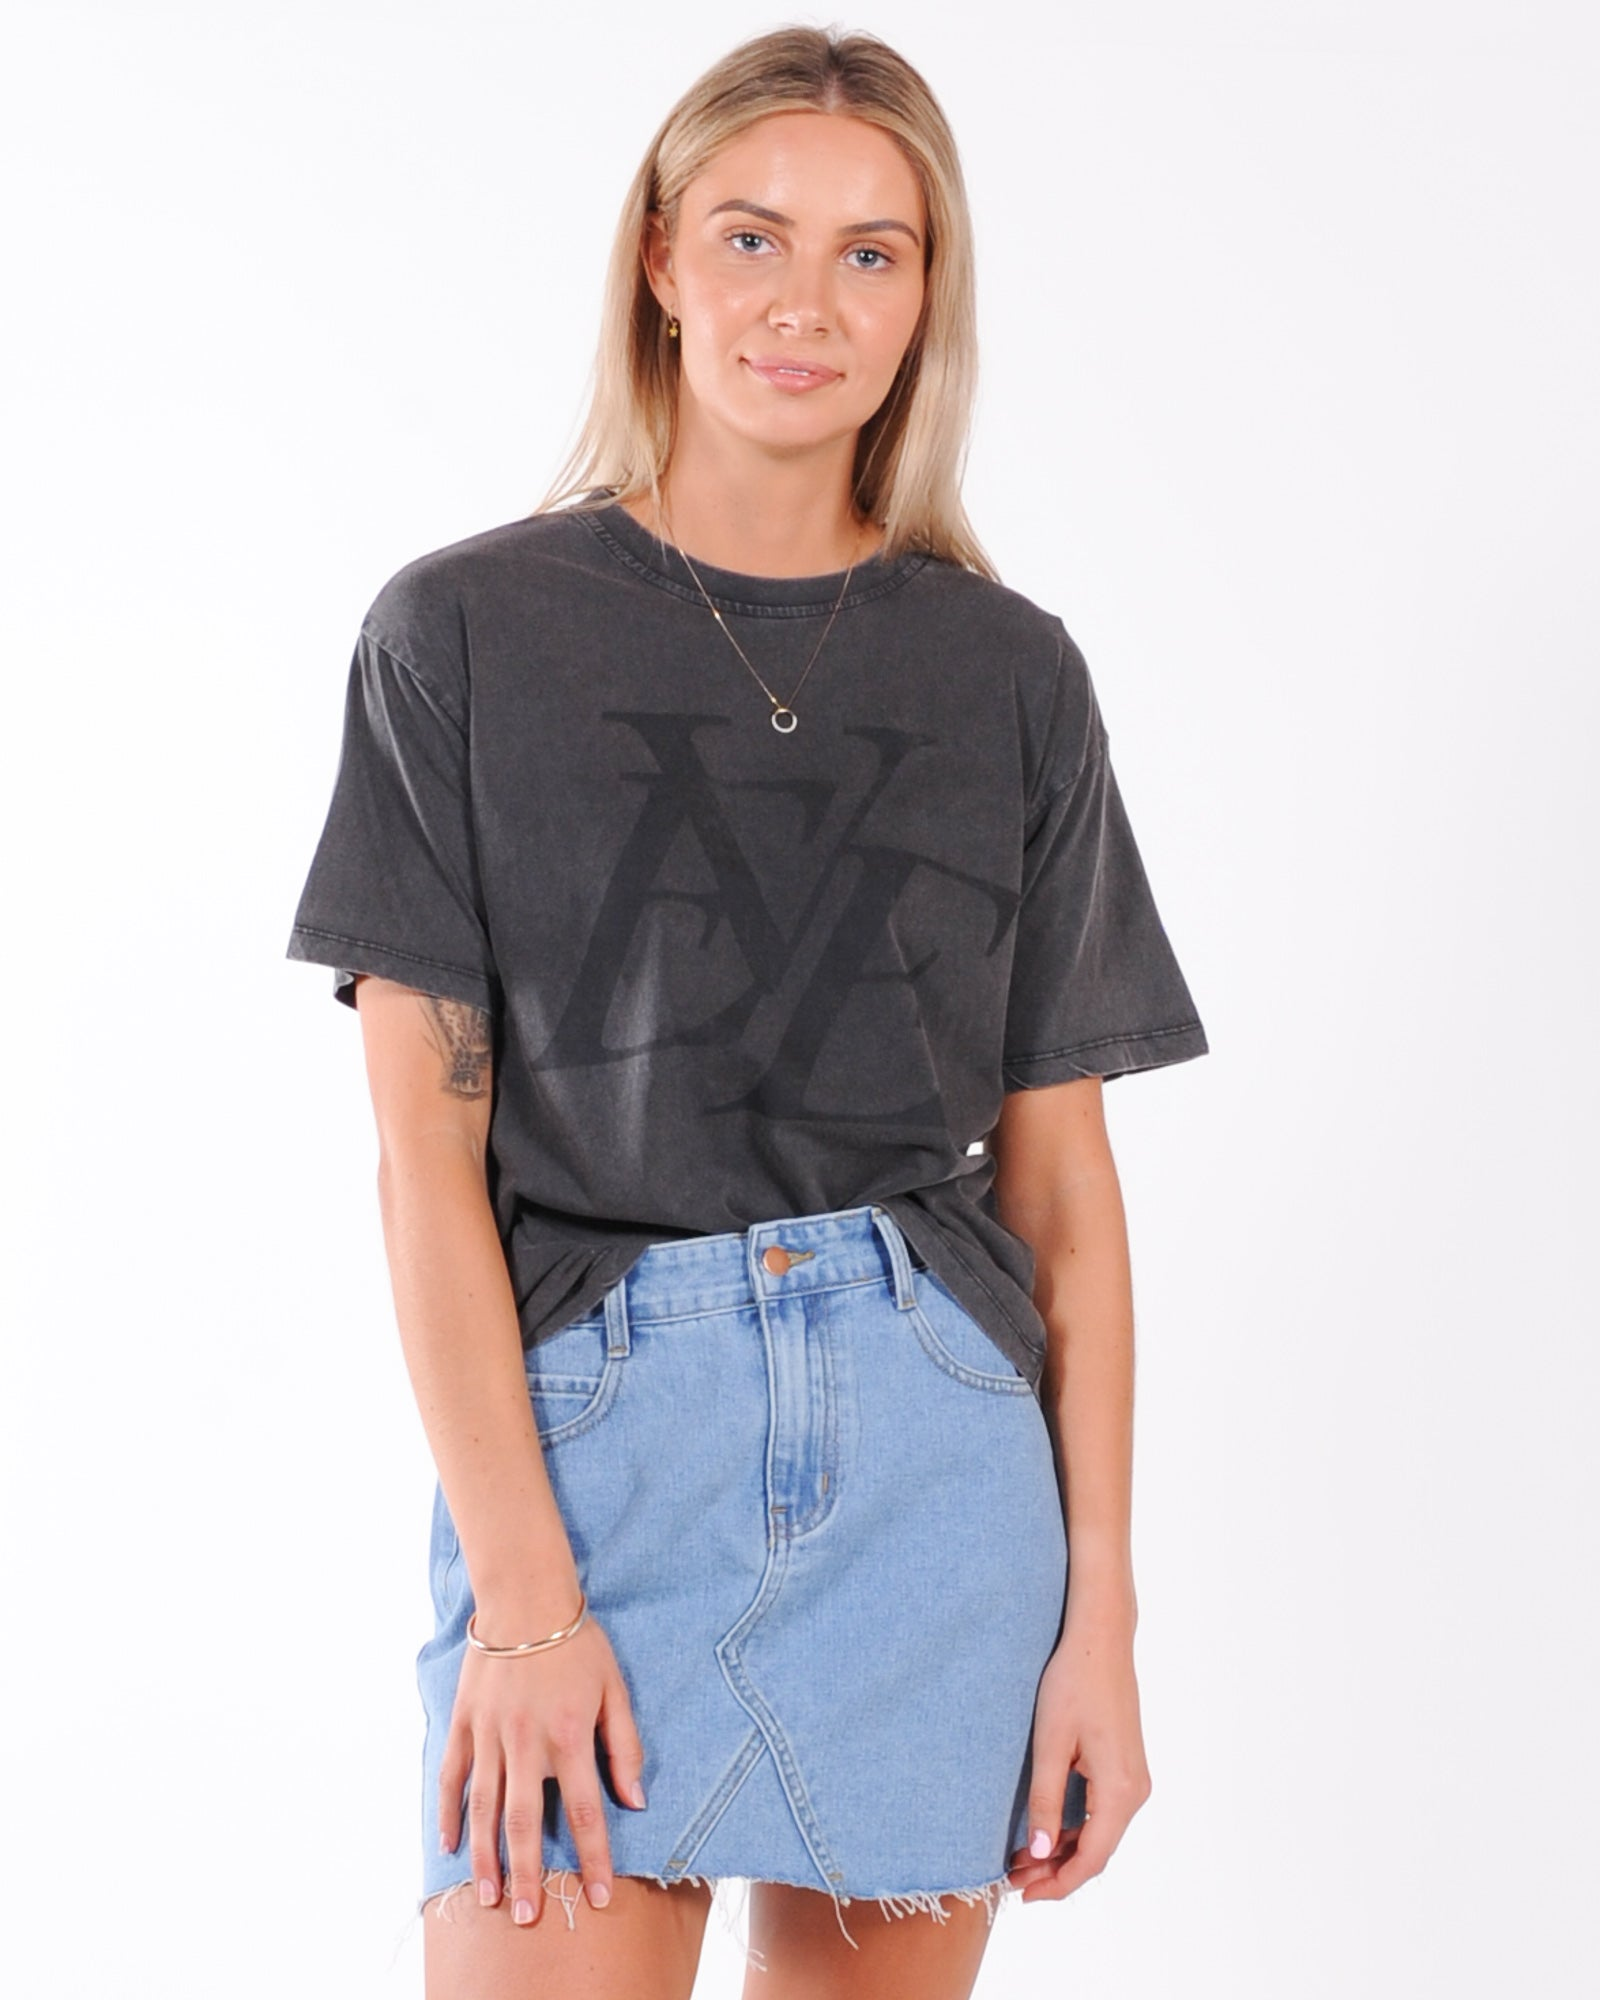 All About Eve Vintage Eve Tee - Washed Black